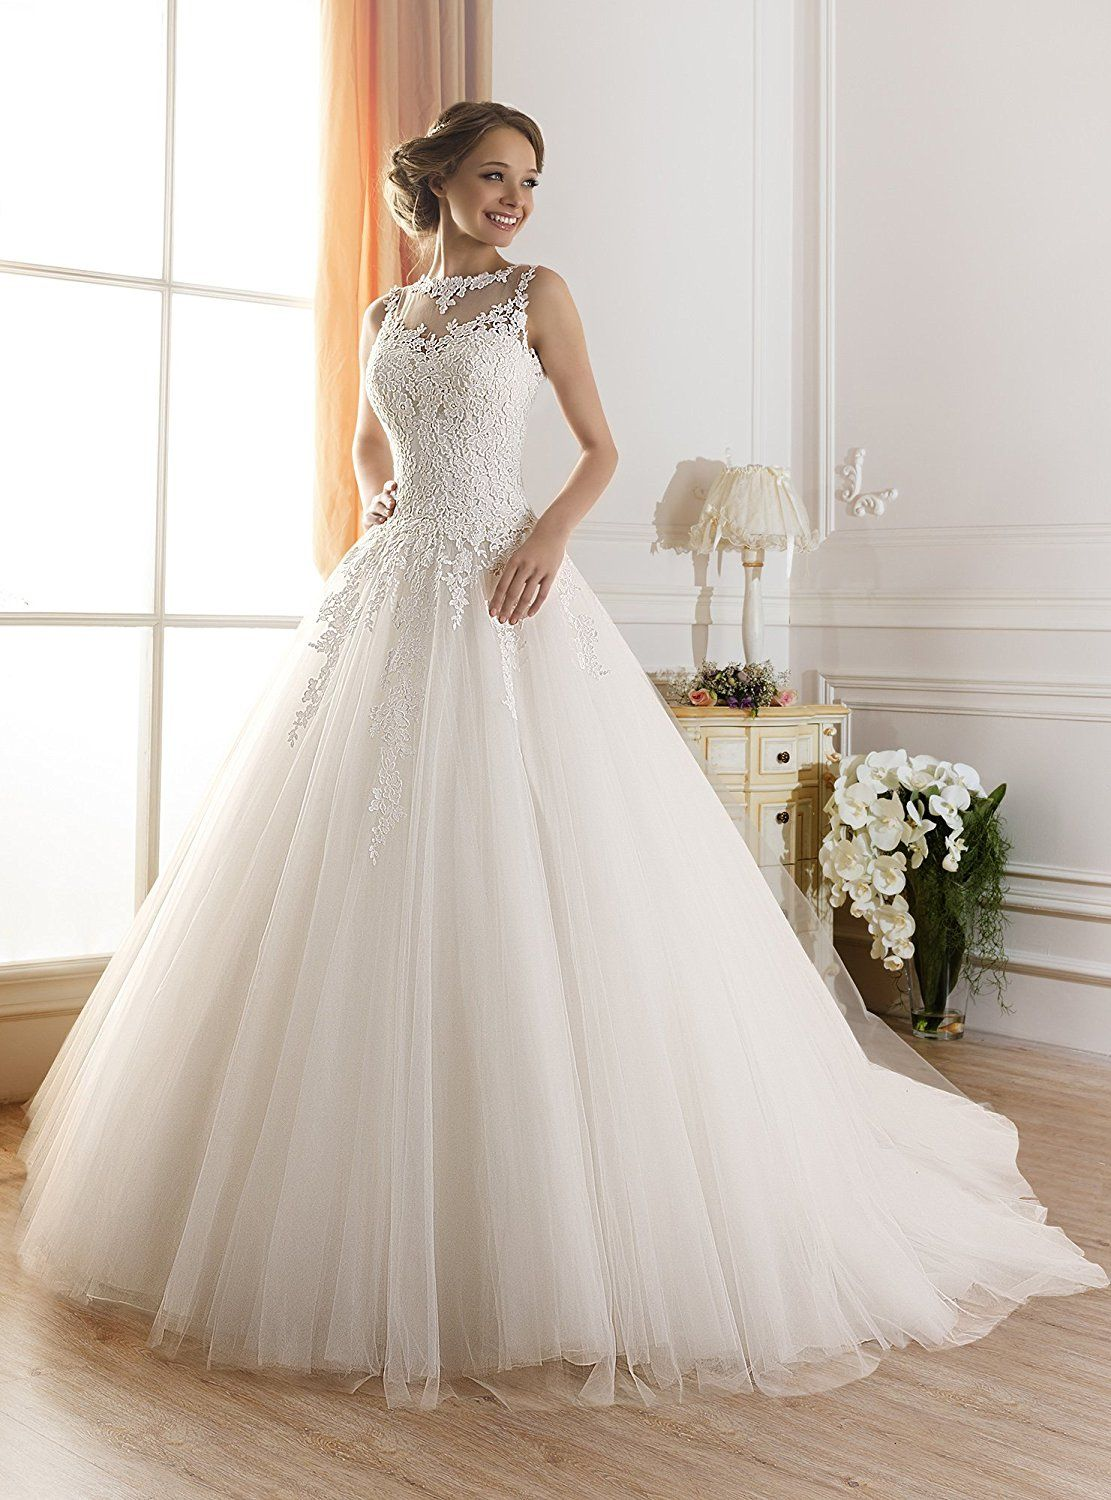 2019 Wedding Dress Amazon - Wedding Dresses for Guests Check more at ...